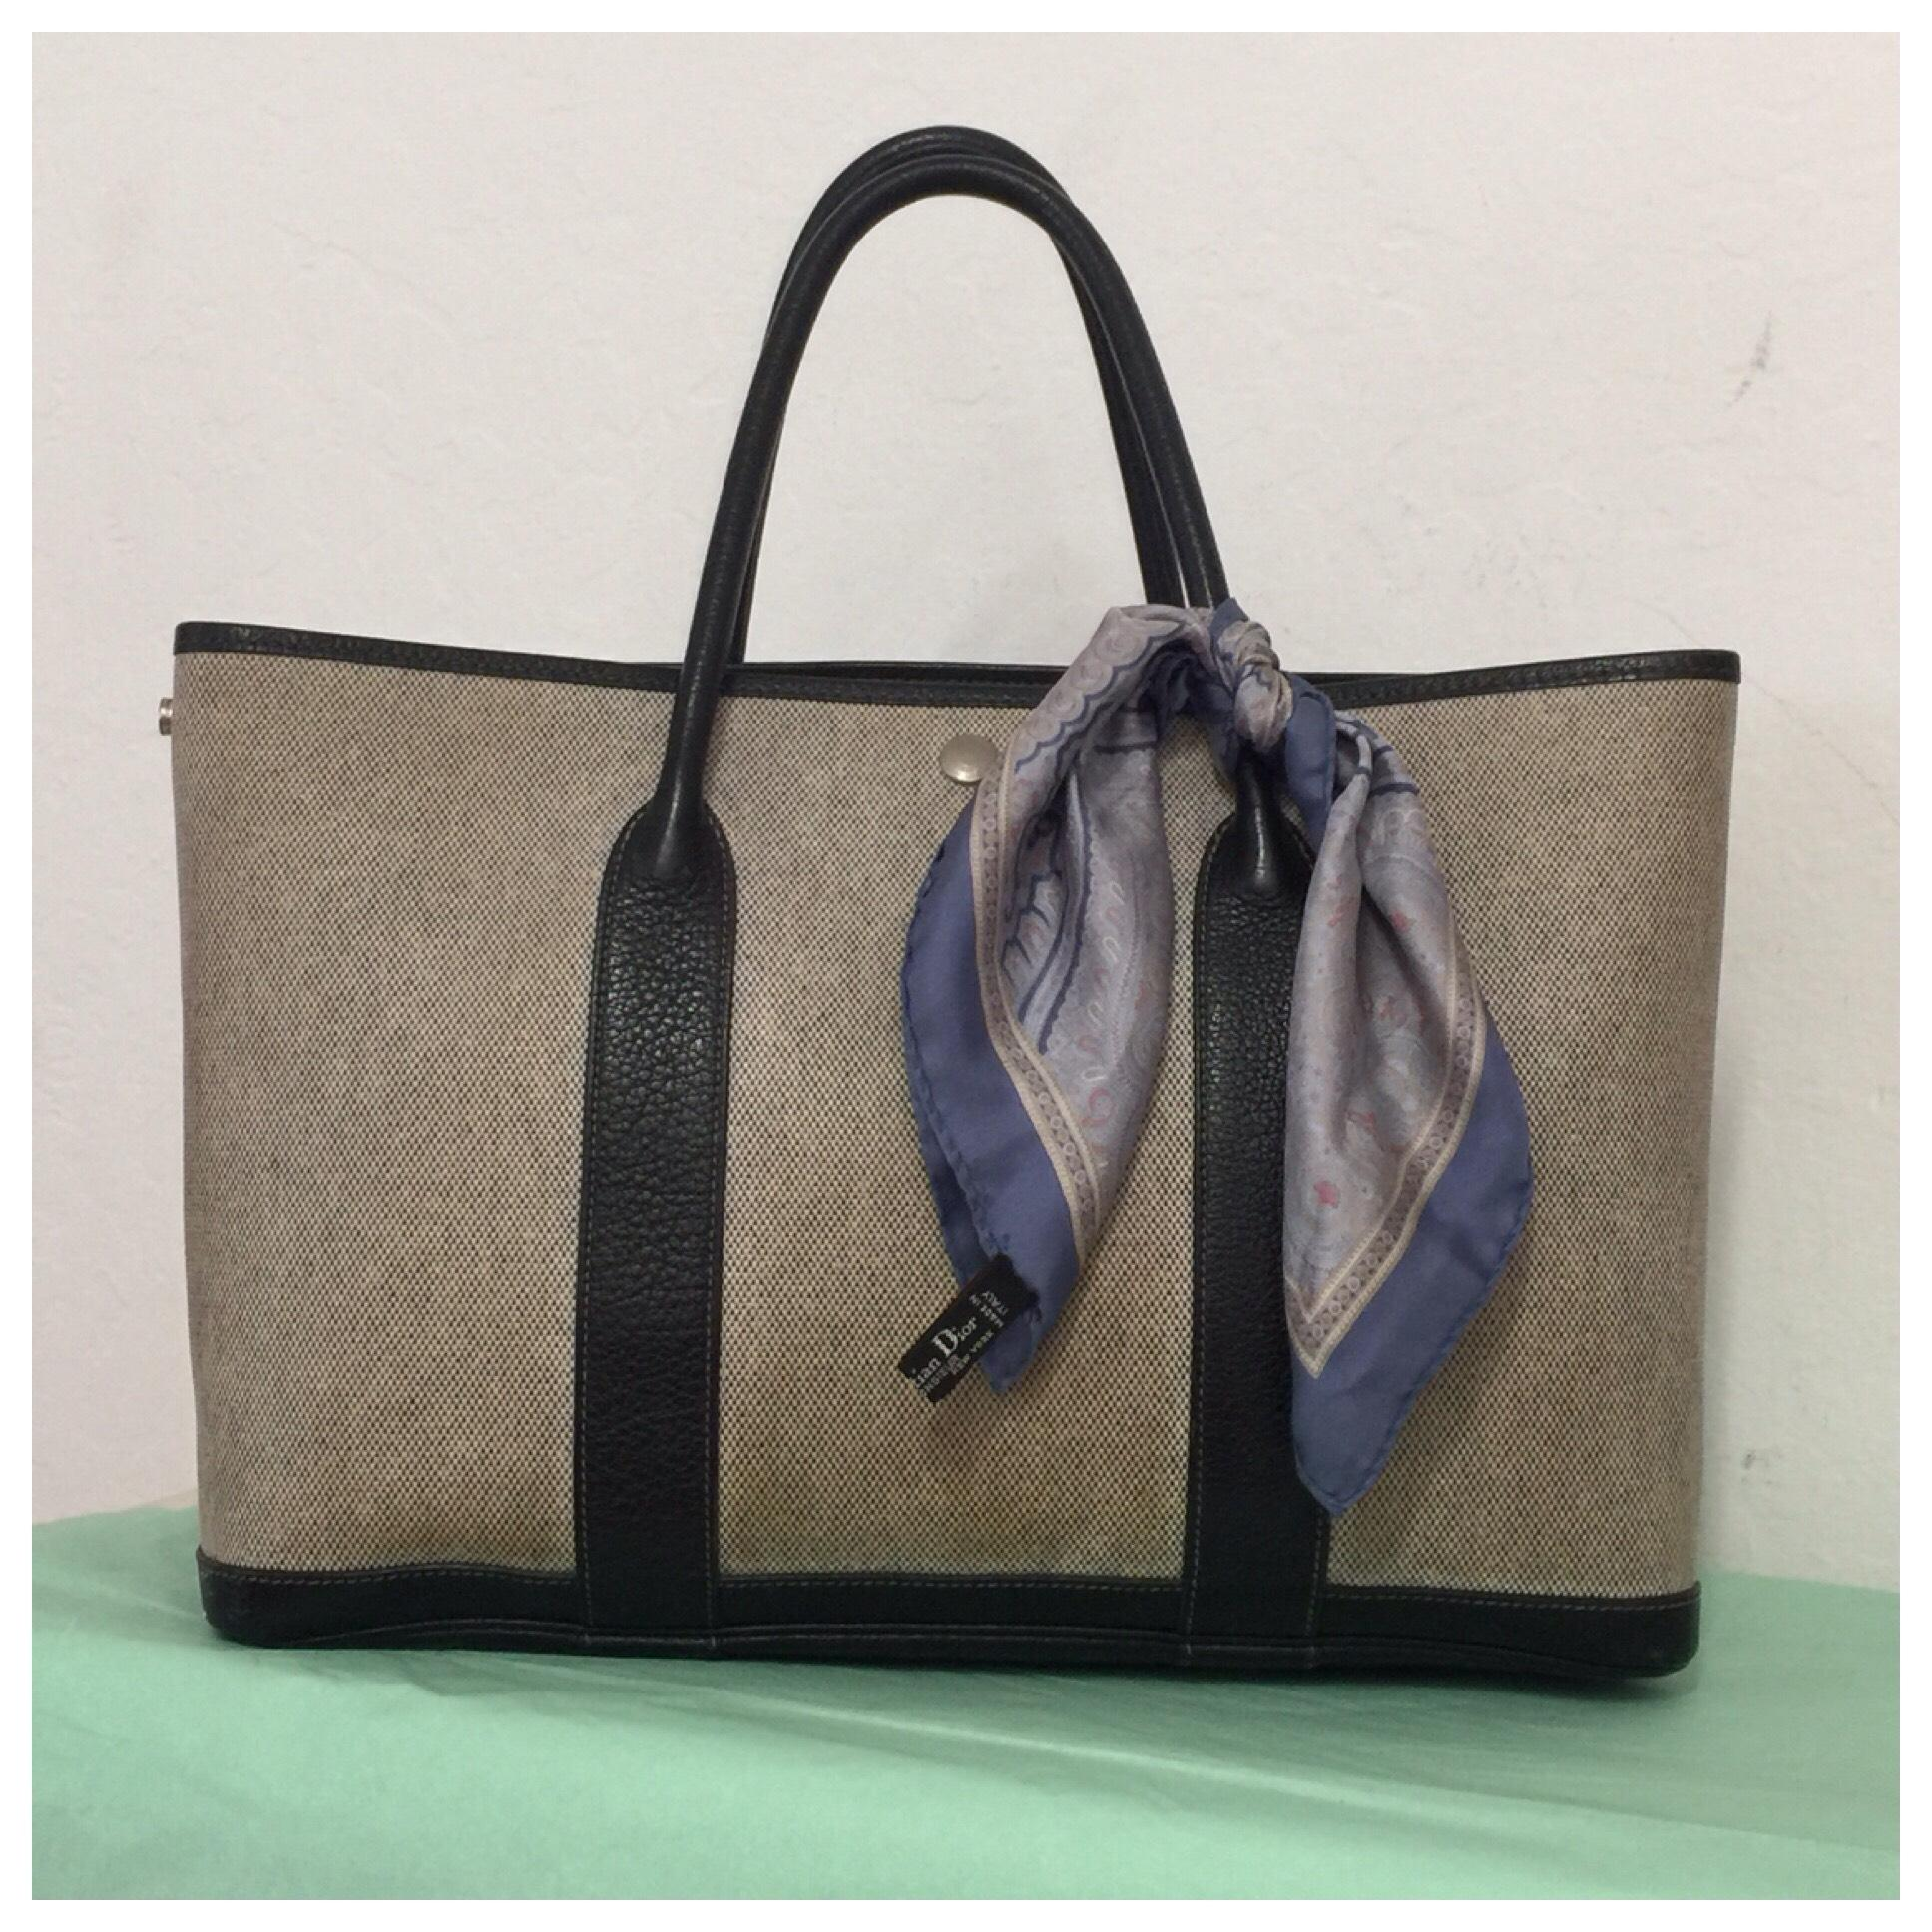 Herms Garden Party Totes Up to 70 off at Tradesy aec119d9a91db